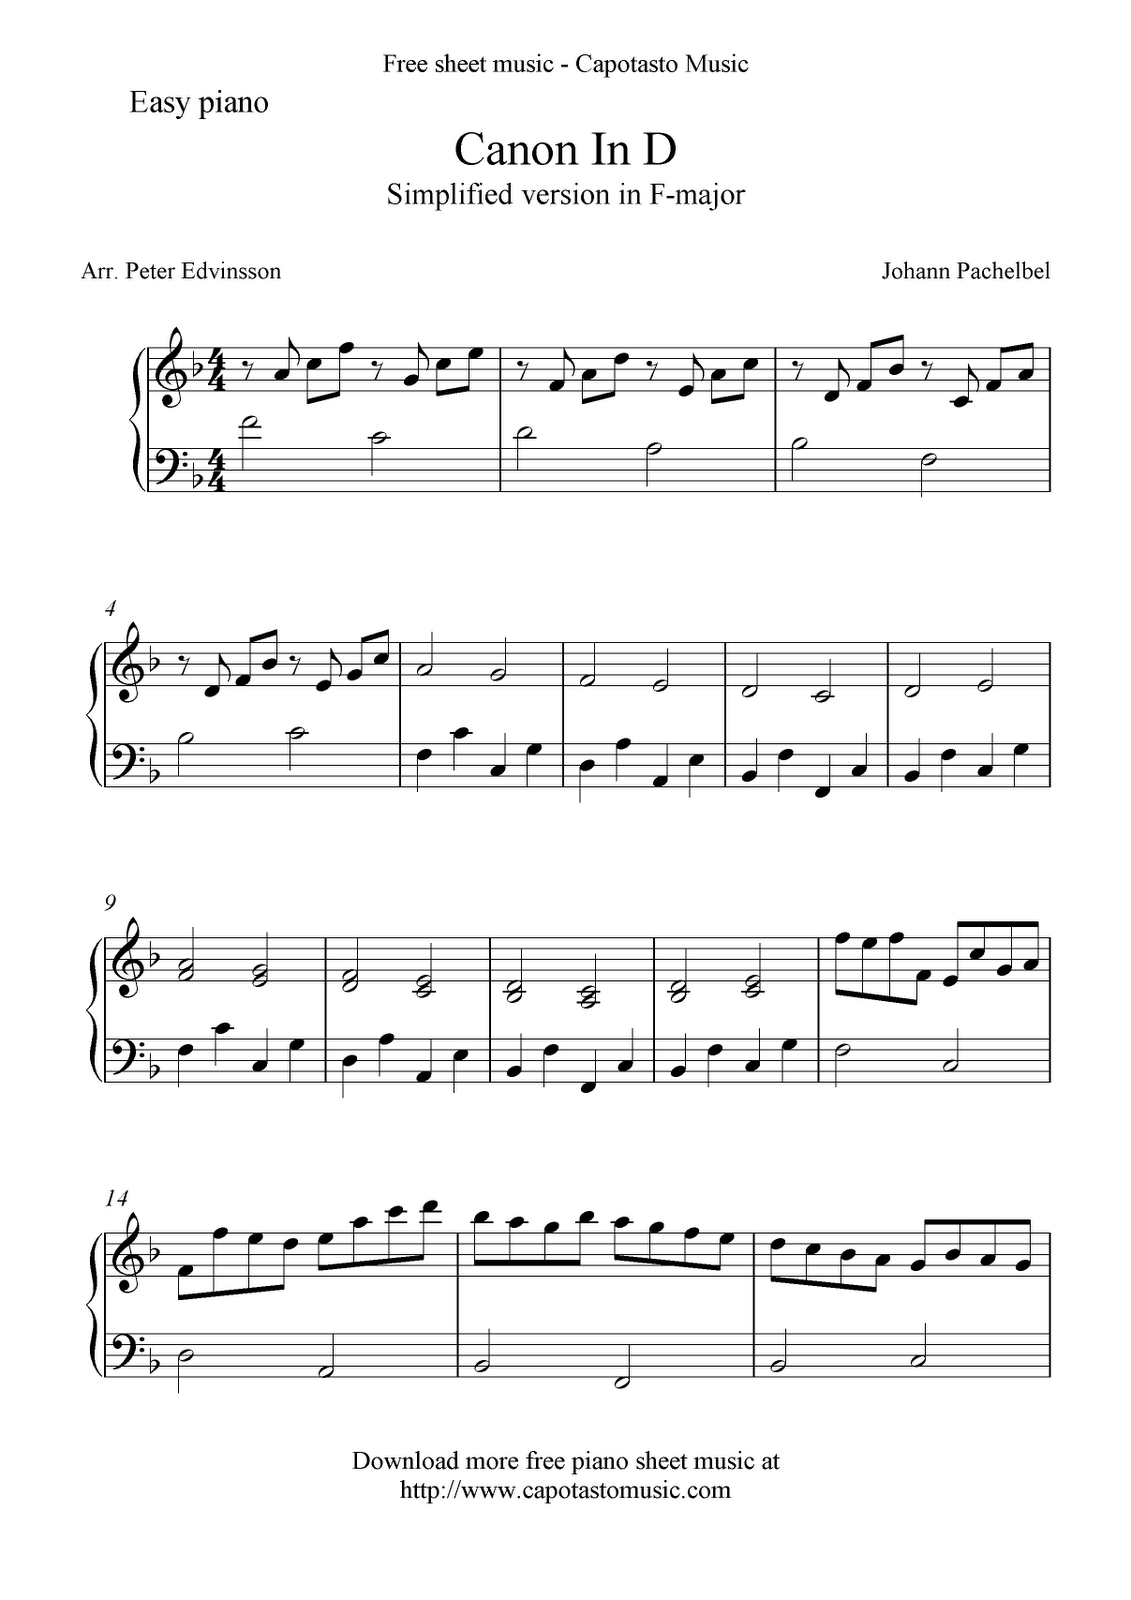 graphic about Canon in D Piano Sheet Music Free Printable referred to as Canon Within D Cost-free Simple Piano Sheet Songs Piano Training